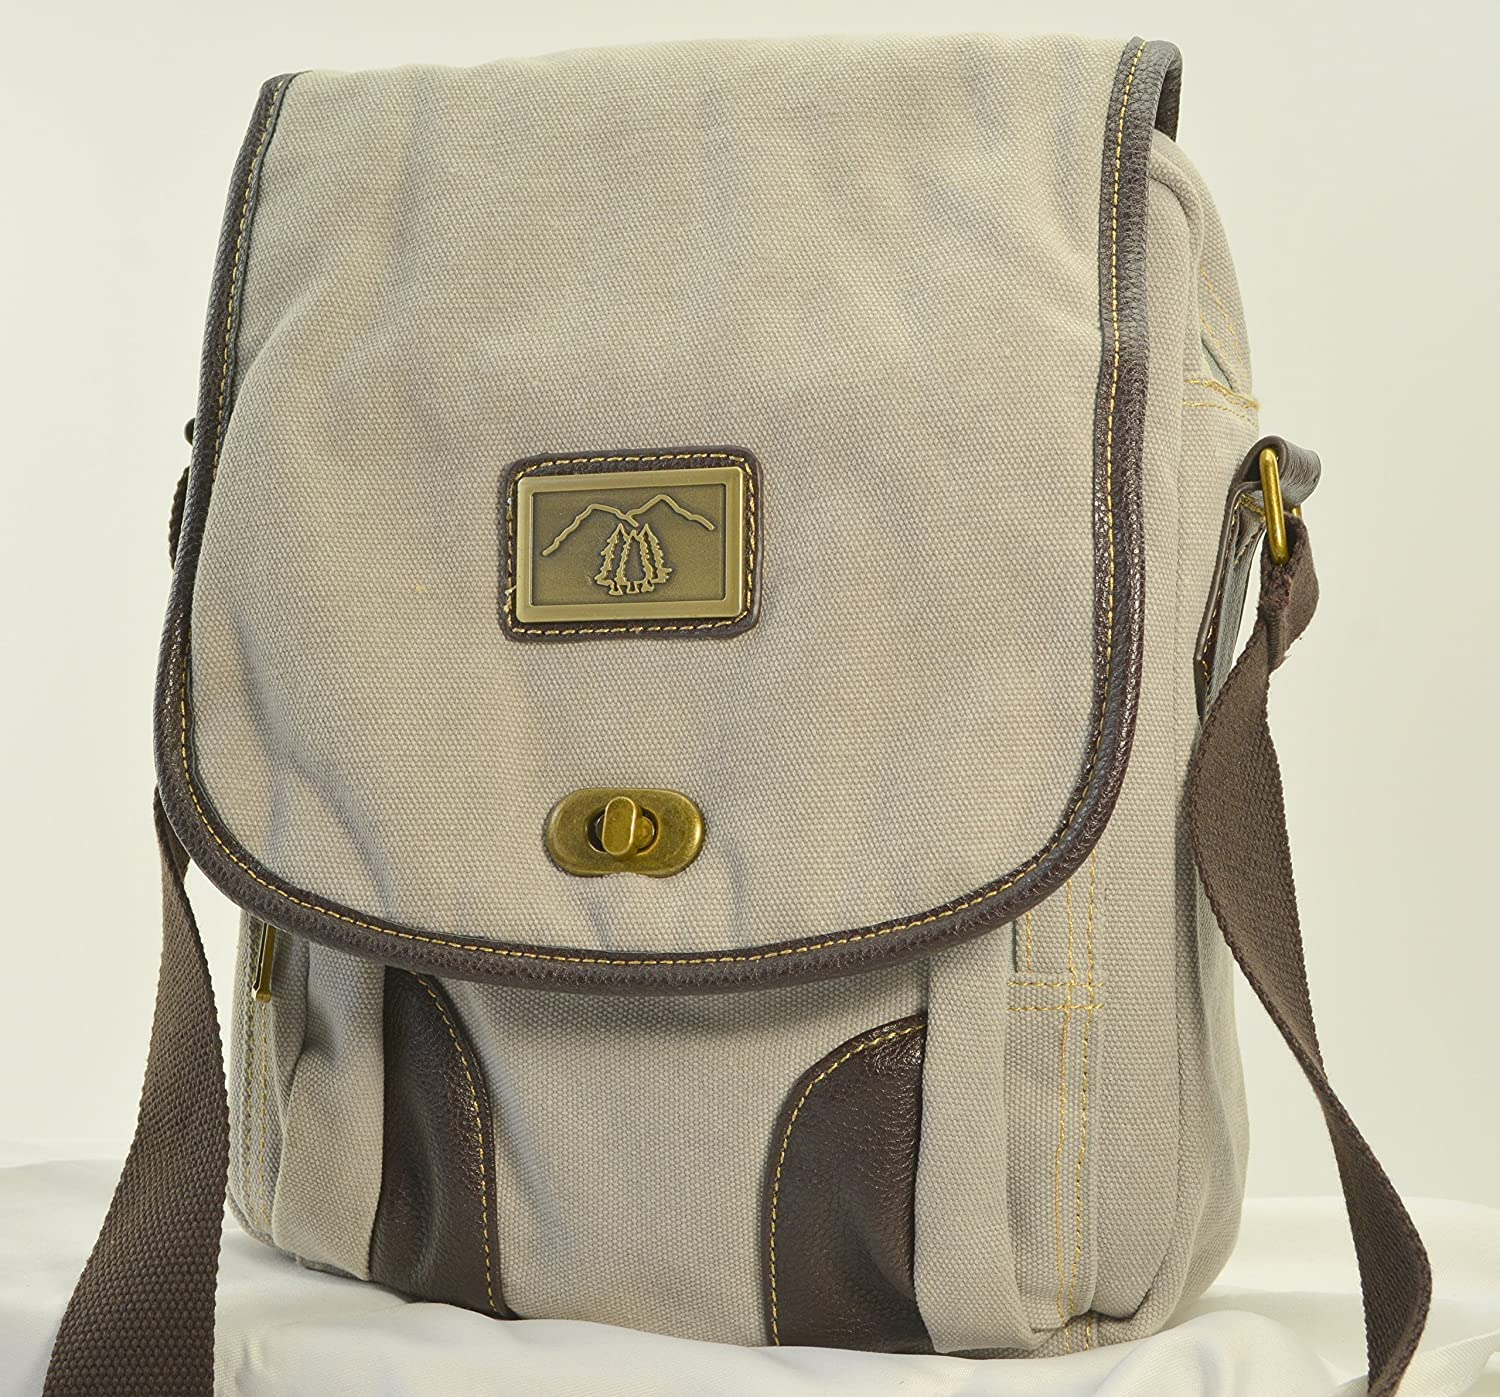 Pearl Grey Canvas Messenger Concealed Carry Purse / Bag by Camille Conceals - Large Semi Auto or Revolver - Room for a Tablet and More!